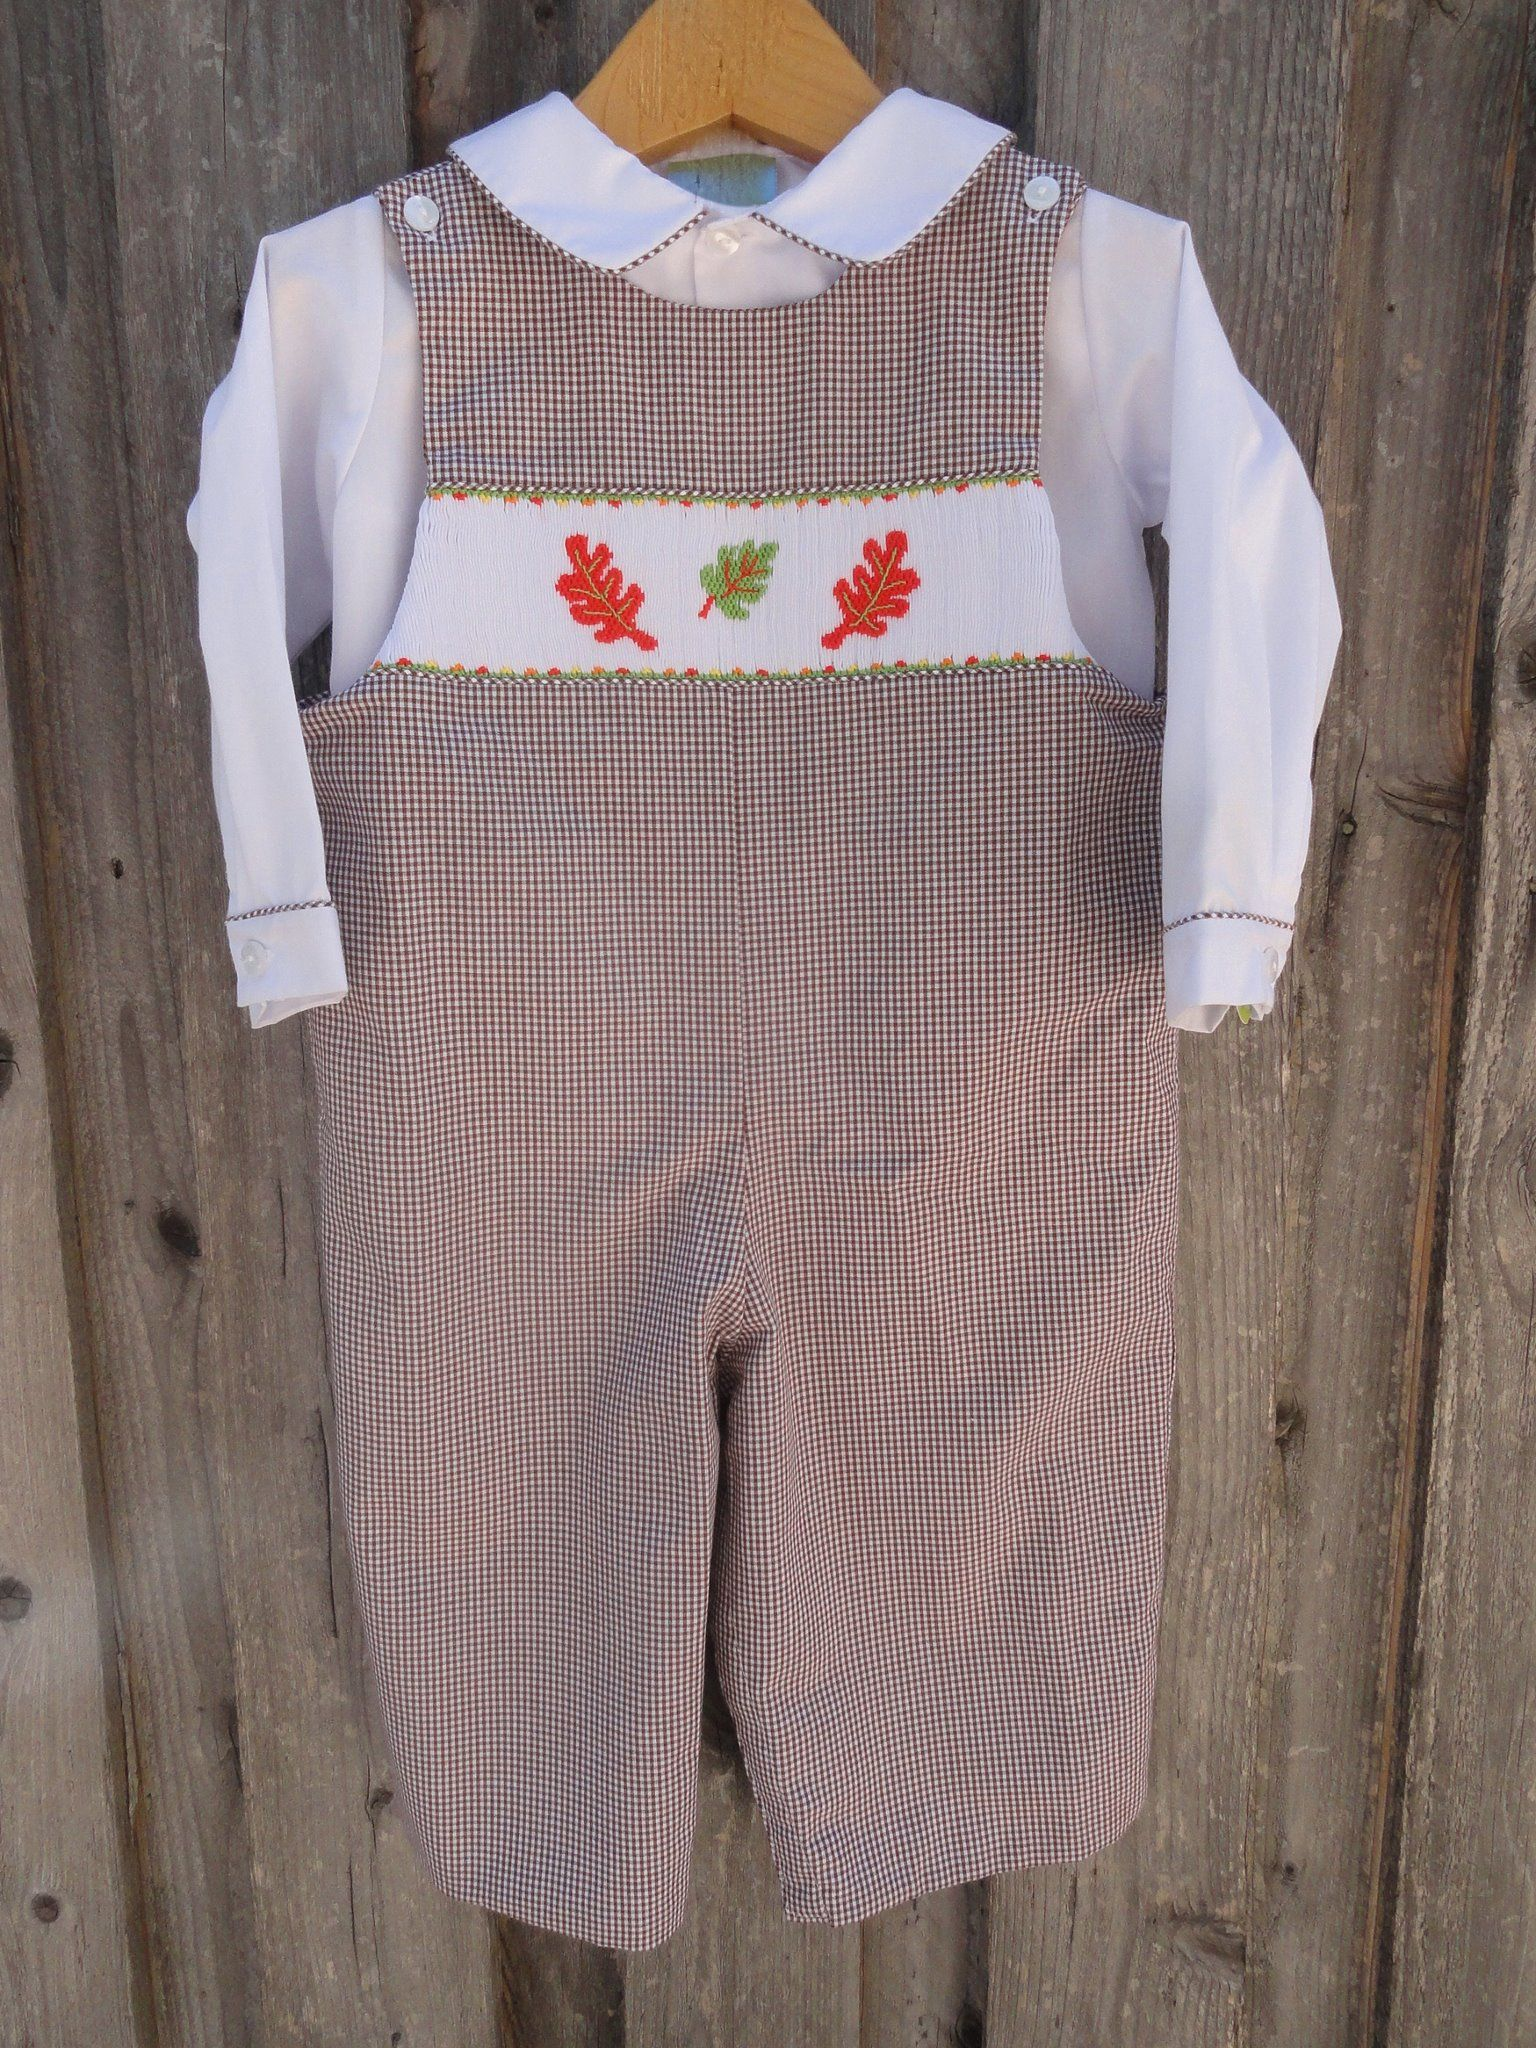 74859a4b5a5 Fall Leaves Smocked Longall from Smocked Auctions